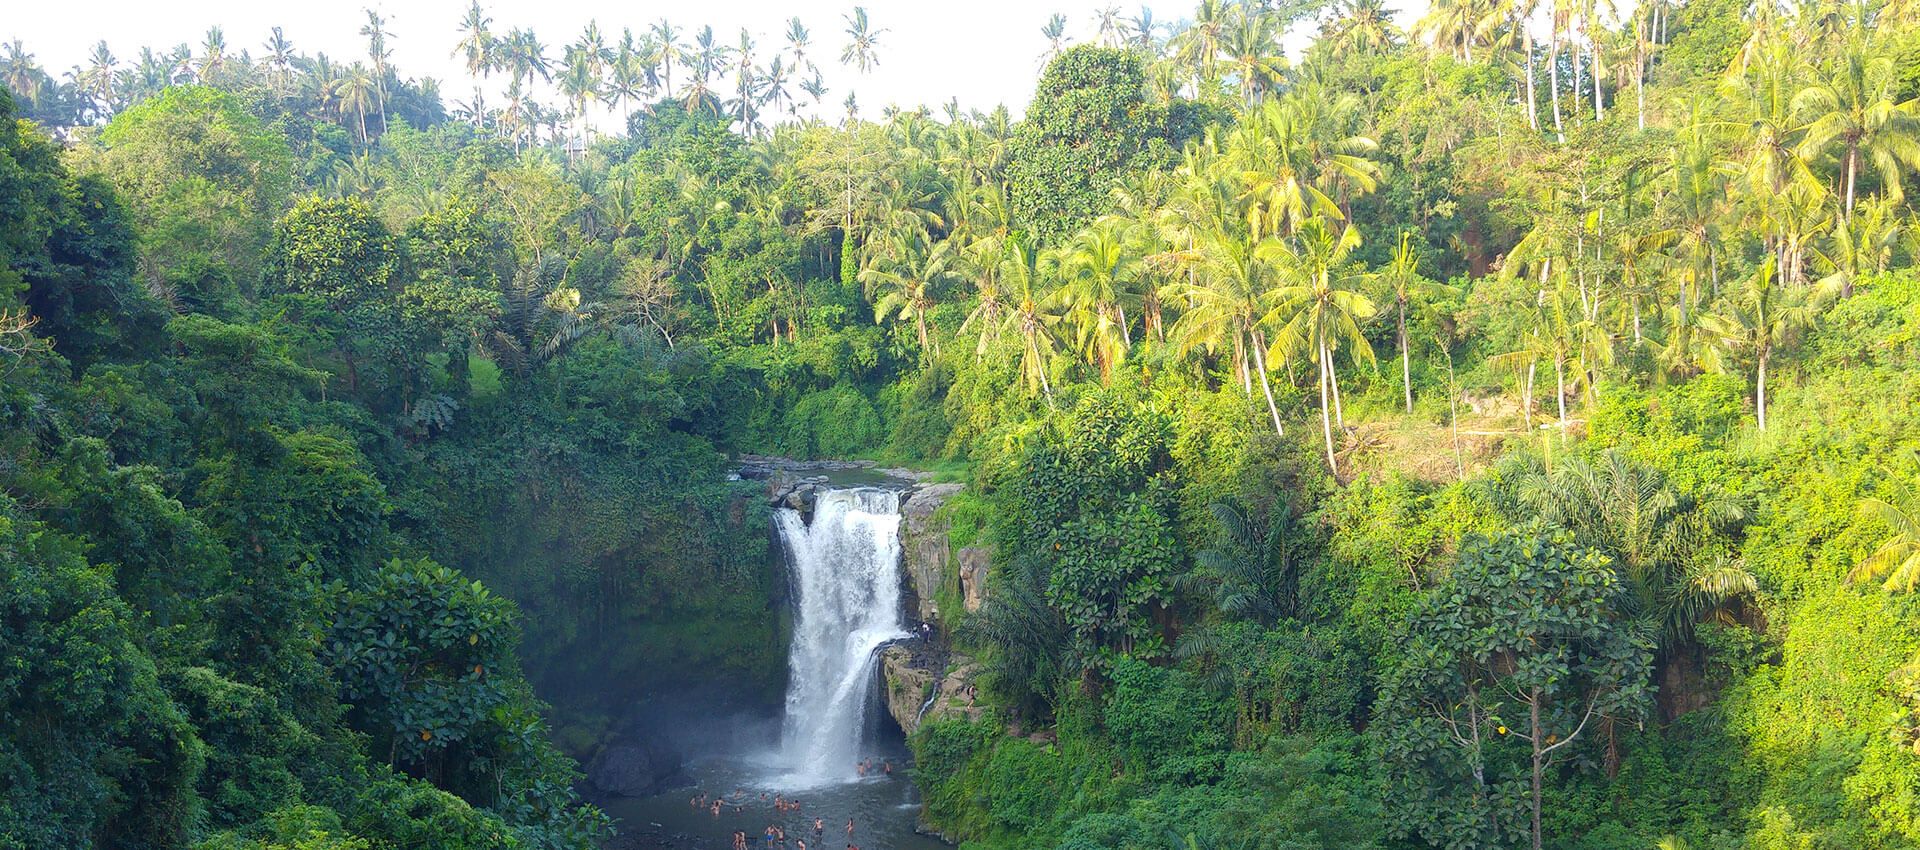 Stunning Tegenungan waterfall in the lush jungle of Bali